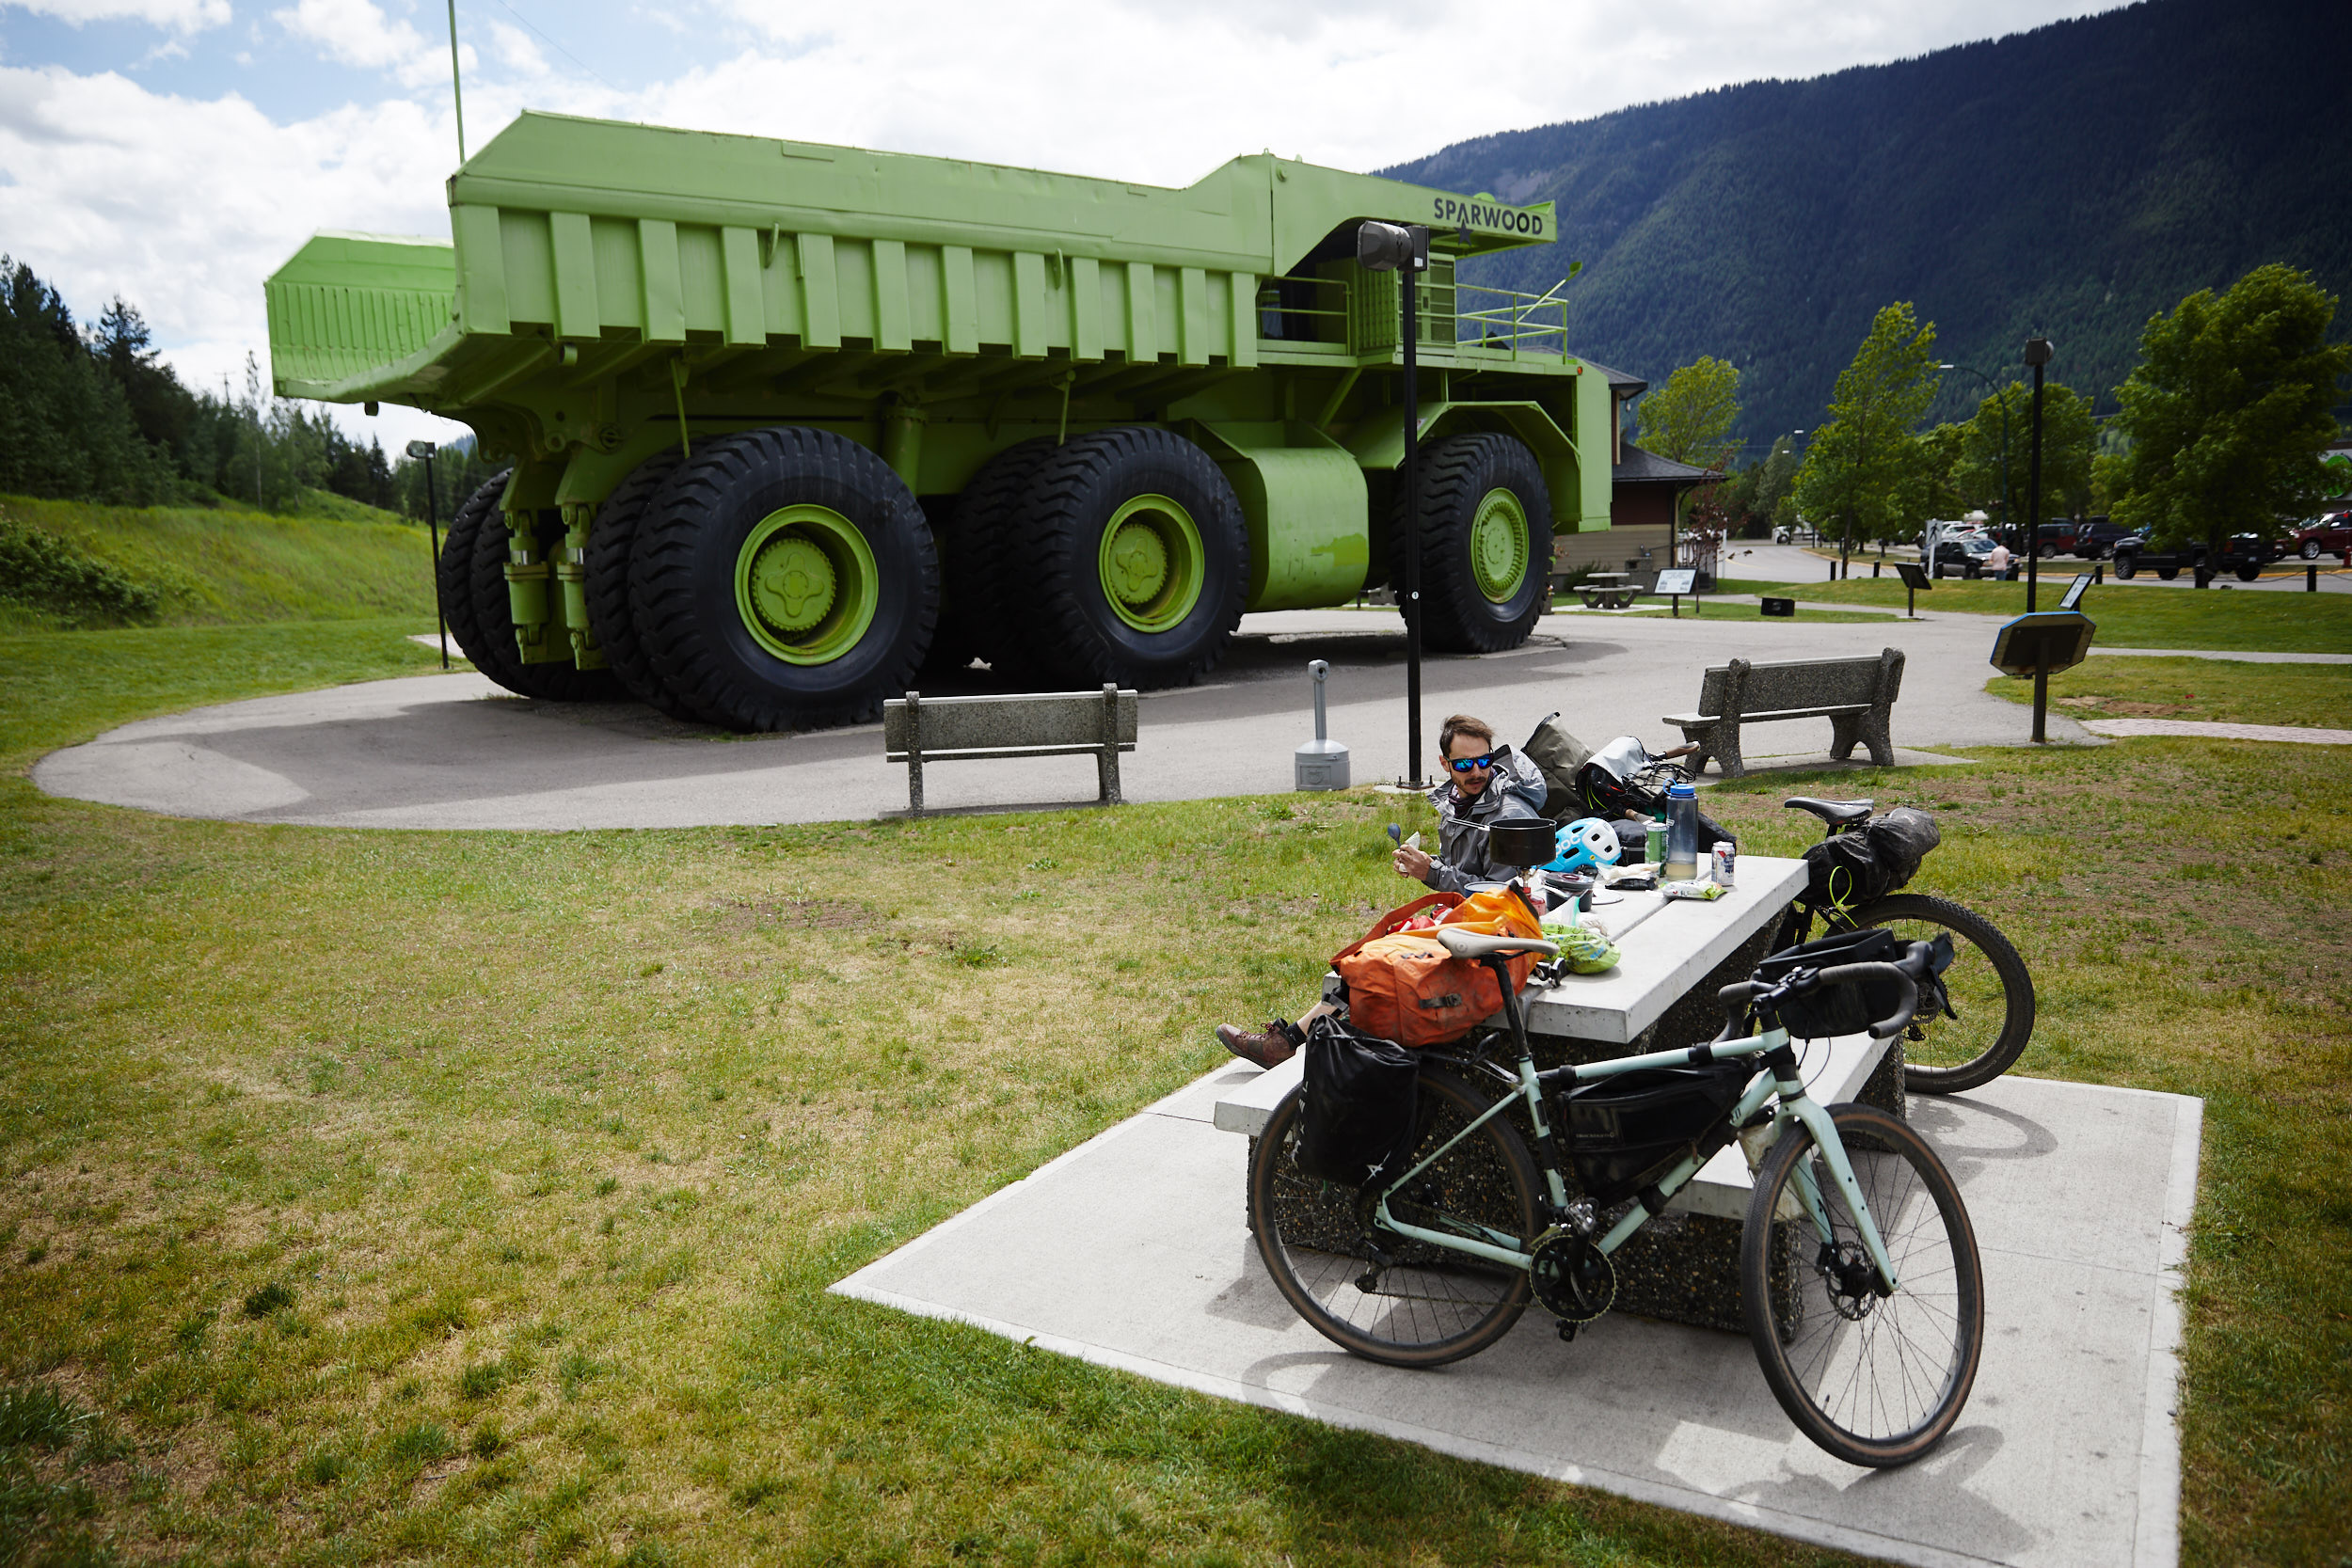 A quick lunch break at the famous dump truck in Sparwood.